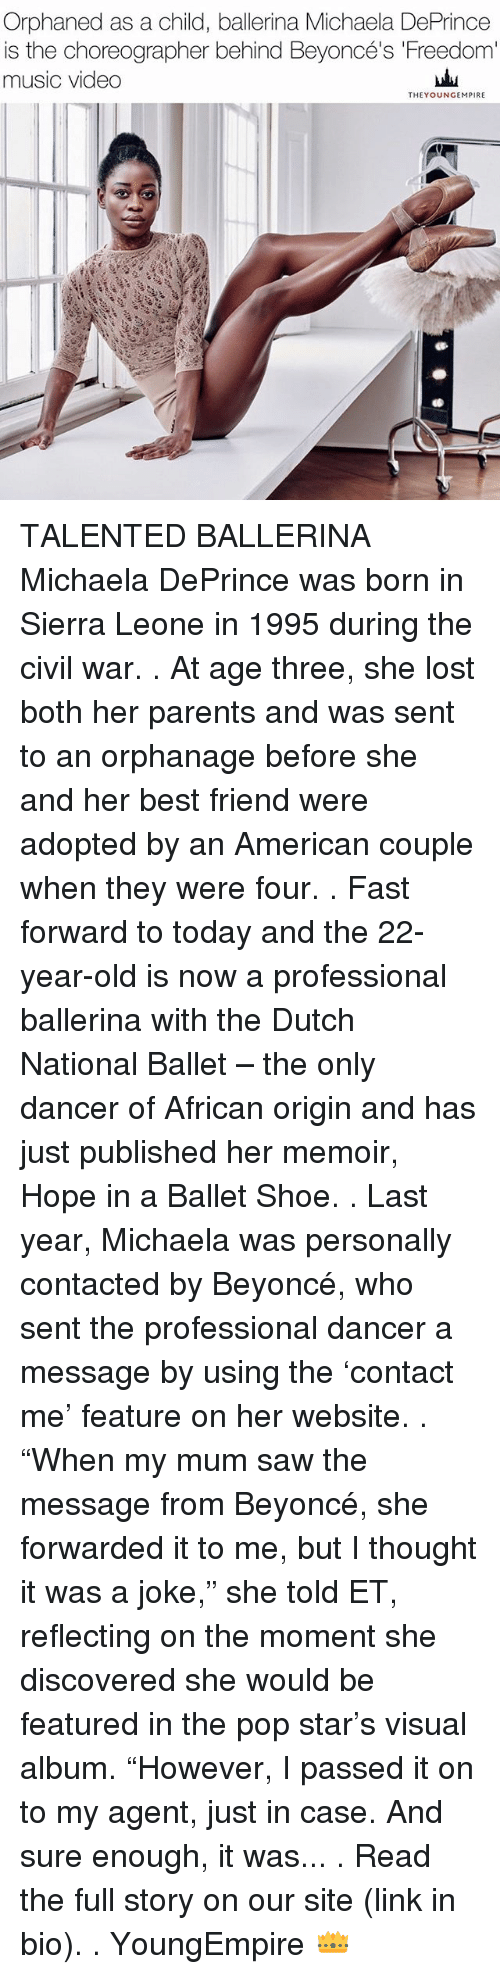 "Best Friend, Beyonce, and Memes: Orphaned as a child, ballerina Michaela DePrince  is the choreographer behind Beyoncé's Freedom  music video  THEY OUNGEMPIRE TALENTED BALLERINA Michaela DePrince was born in Sierra Leone in 1995 during the civil war. . At age three, she lost both her parents and was sent to an orphanage before she and her best friend were adopted by an American couple when they were four. . Fast forward to today and the 22-year-old is now a professional ballerina with the Dutch National Ballet – the only dancer of African origin and has just published her memoir, Hope in a Ballet Shoe. . Last year, Michaela was personally contacted by Beyoncé, who sent the professional dancer a message by using the 'contact me' feature on her website. . ""When my mum saw the message from Beyoncé, she forwarded it to me, but I thought it was a joke,"" she told ET, reflecting on the moment she discovered she would be featured in the pop star's visual album. ""However, I passed it on to my agent, just in case. And sure enough, it was... . Read the full story on our site (link in bio). . YoungEmpire 👑"